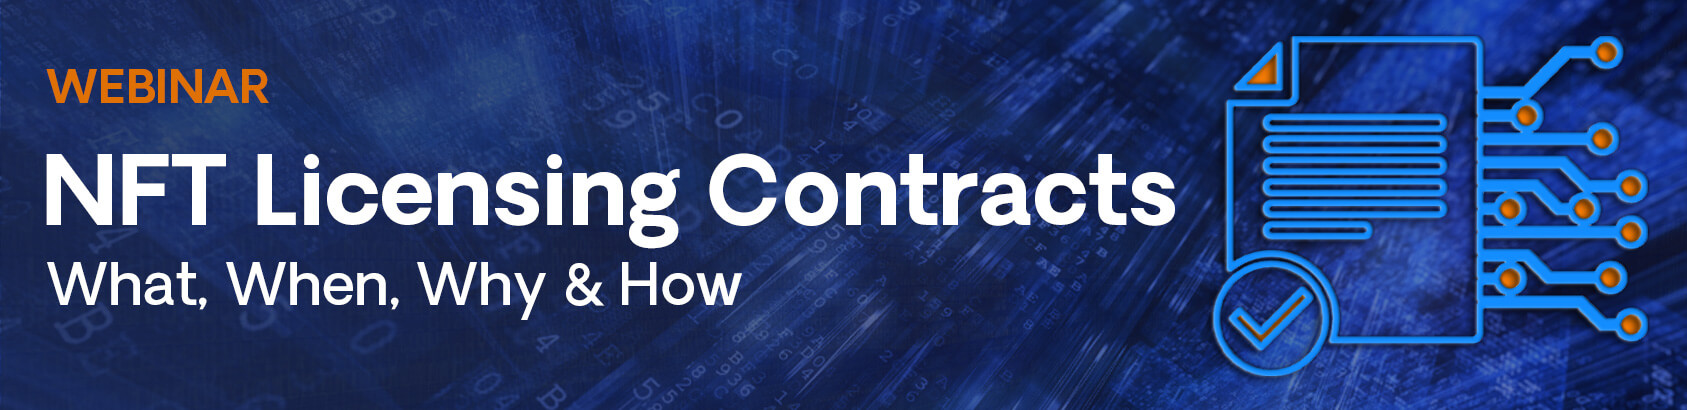 NFT Licensing Contracts: What, When, Why & How image